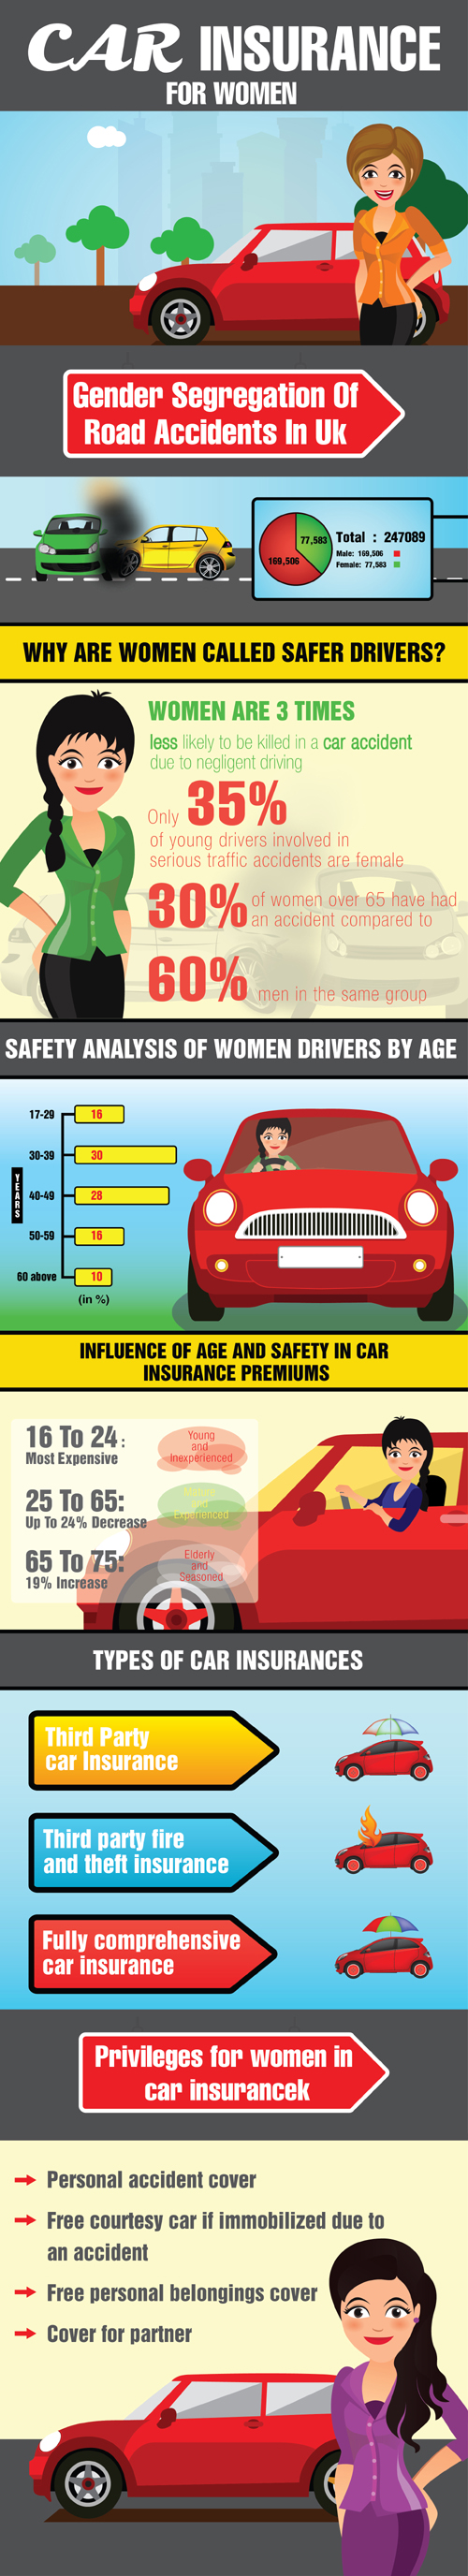 Car Insurance for Women by Quotiva.co.uk